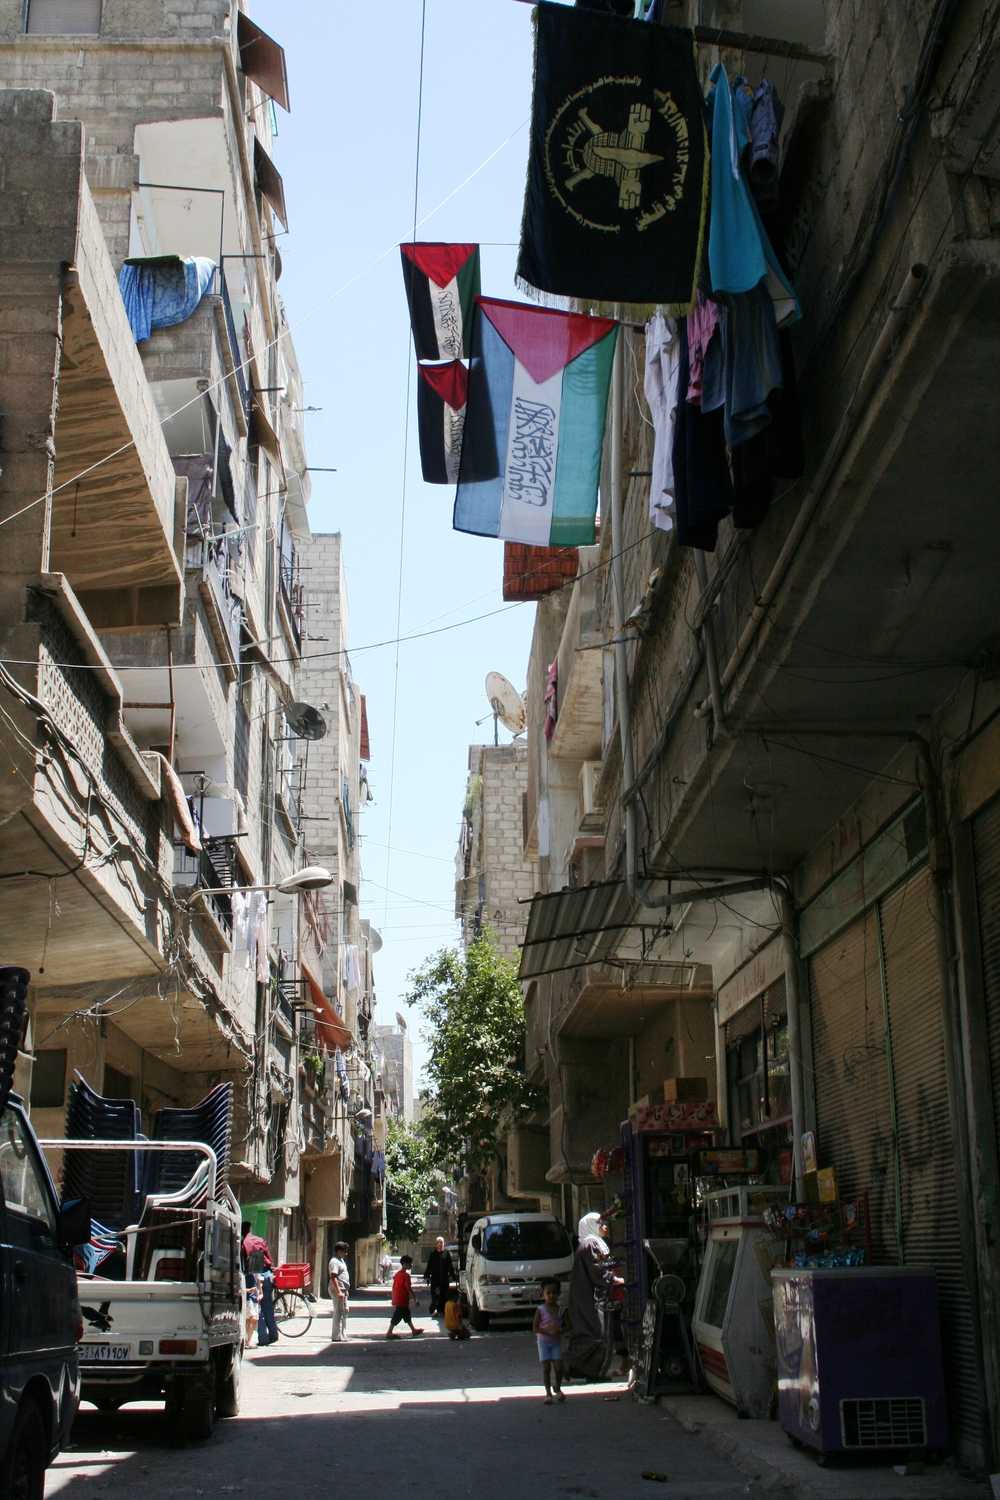 Yarmouk camp/district for Palestinian refugees in the Syrian capital Damascus. (Photo from 2007/8)